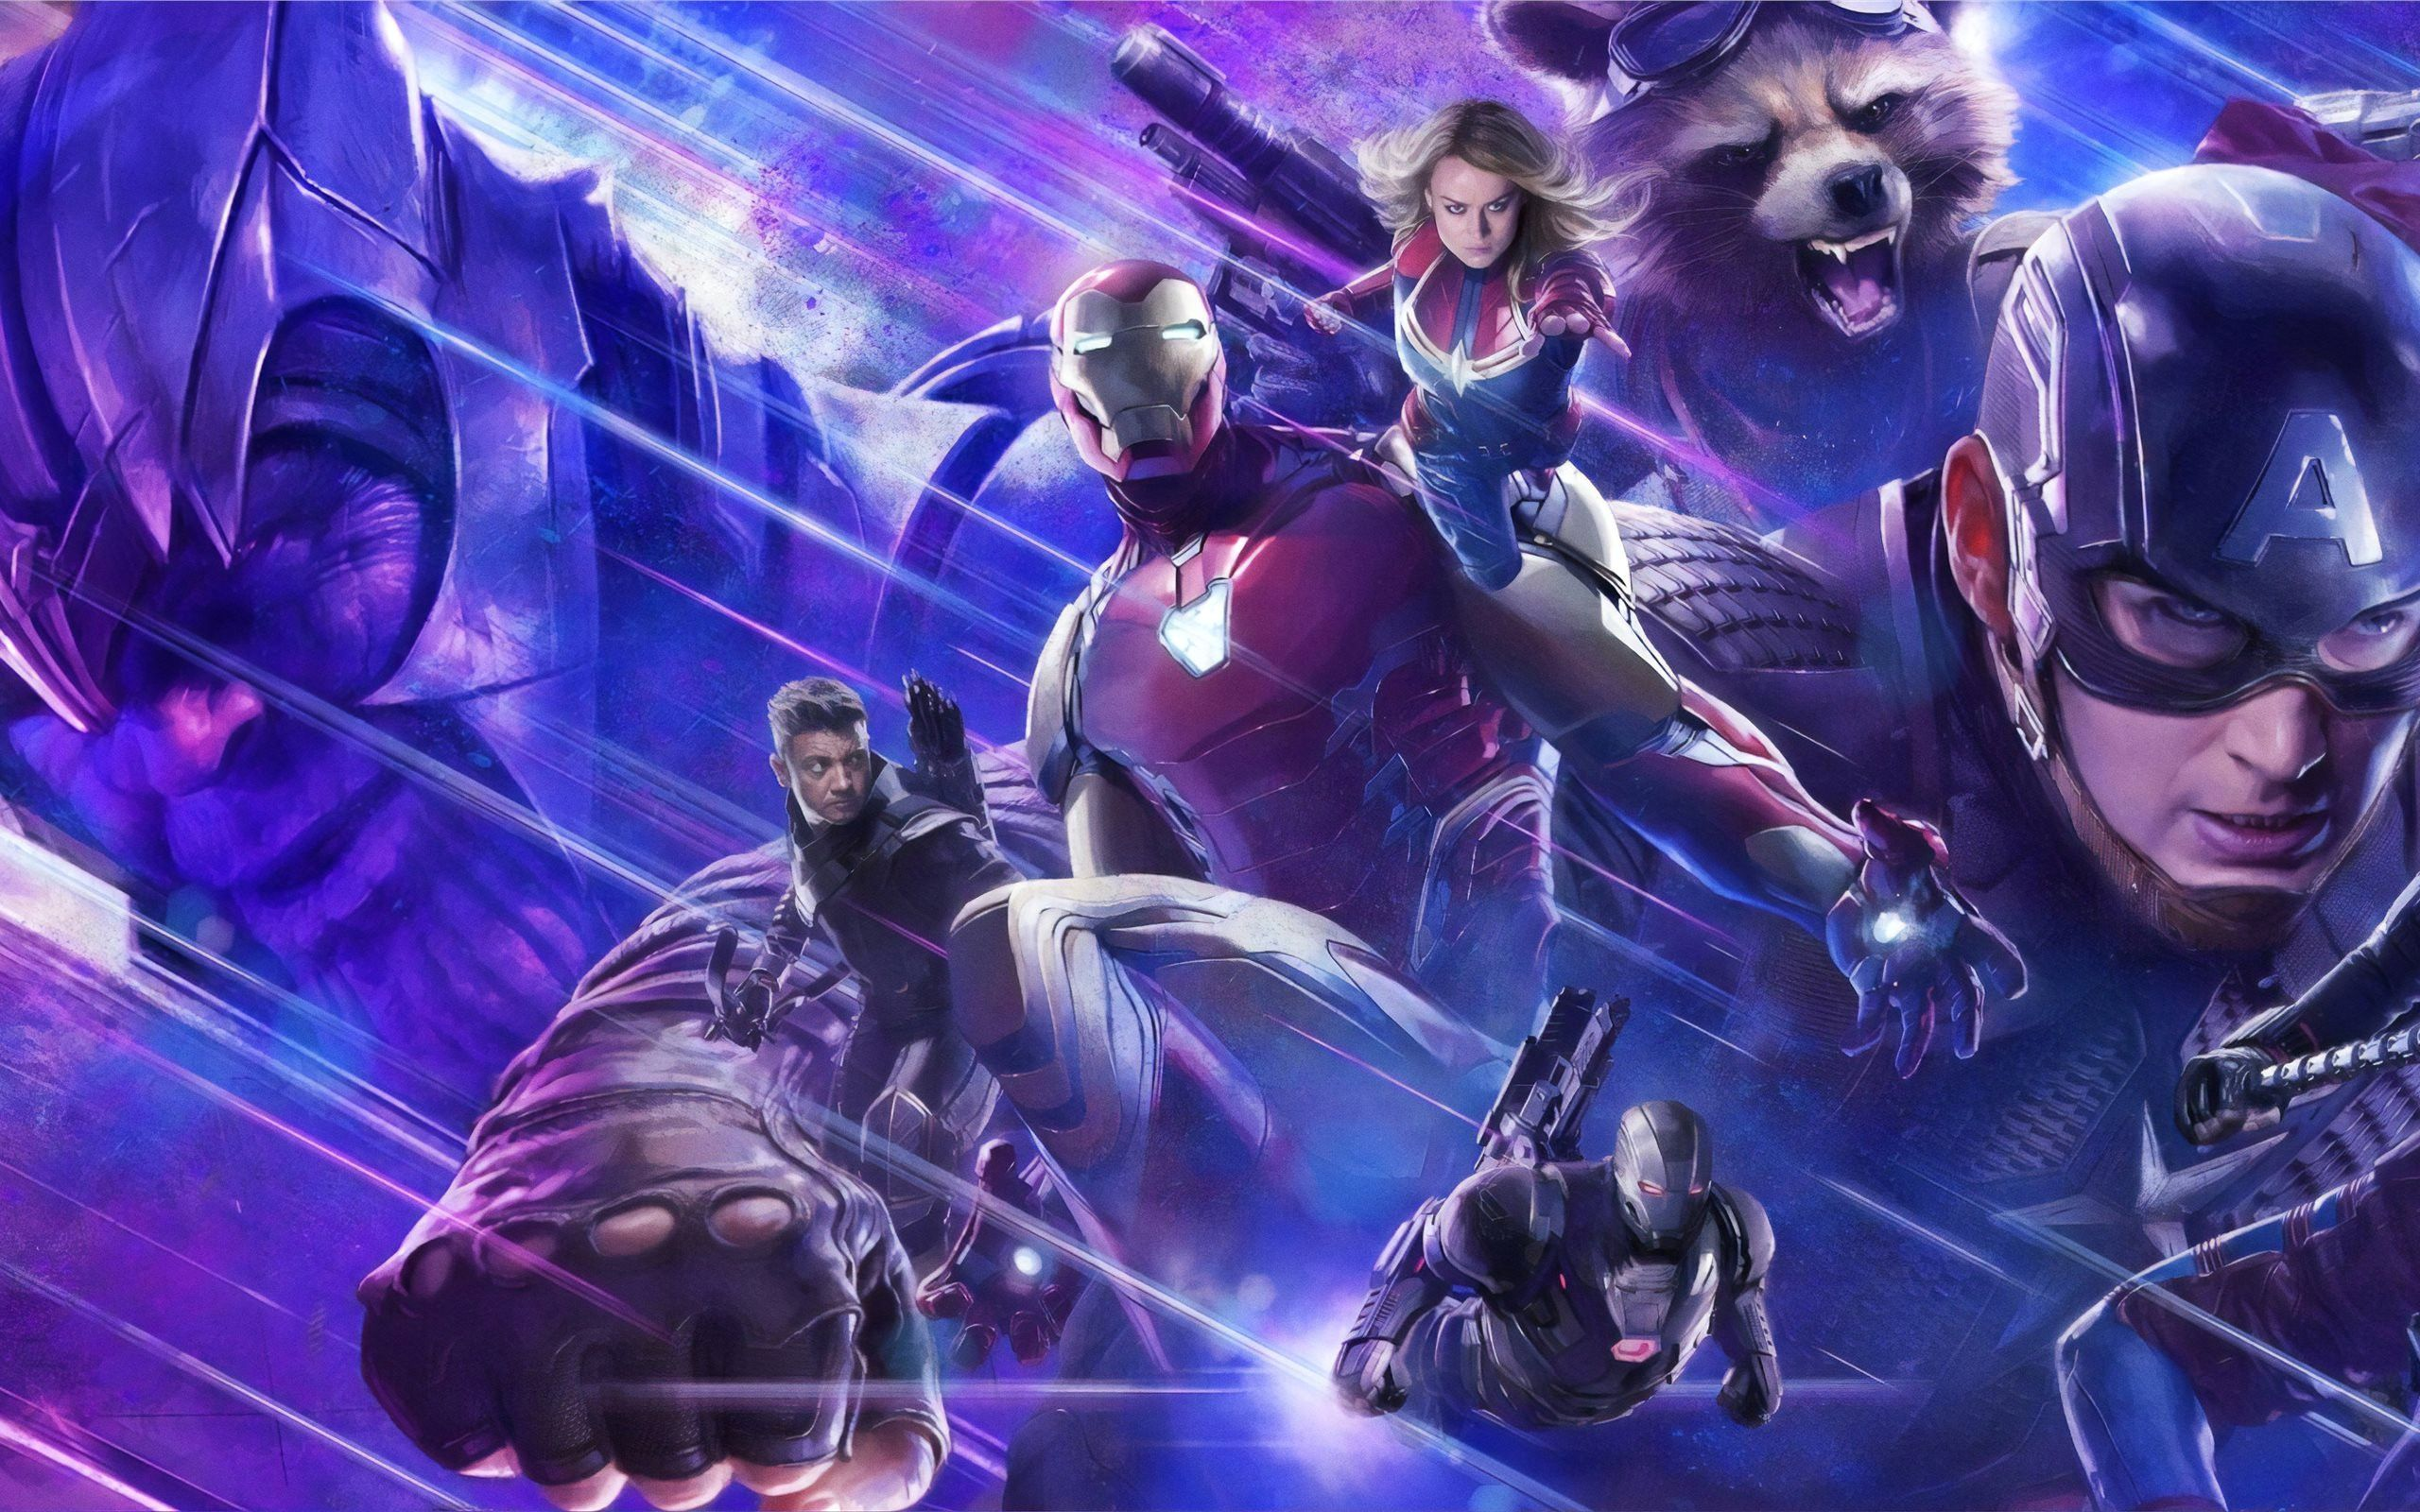 Awesome 5k Avengers Endgame 2019 New Mac Wallpaper Download